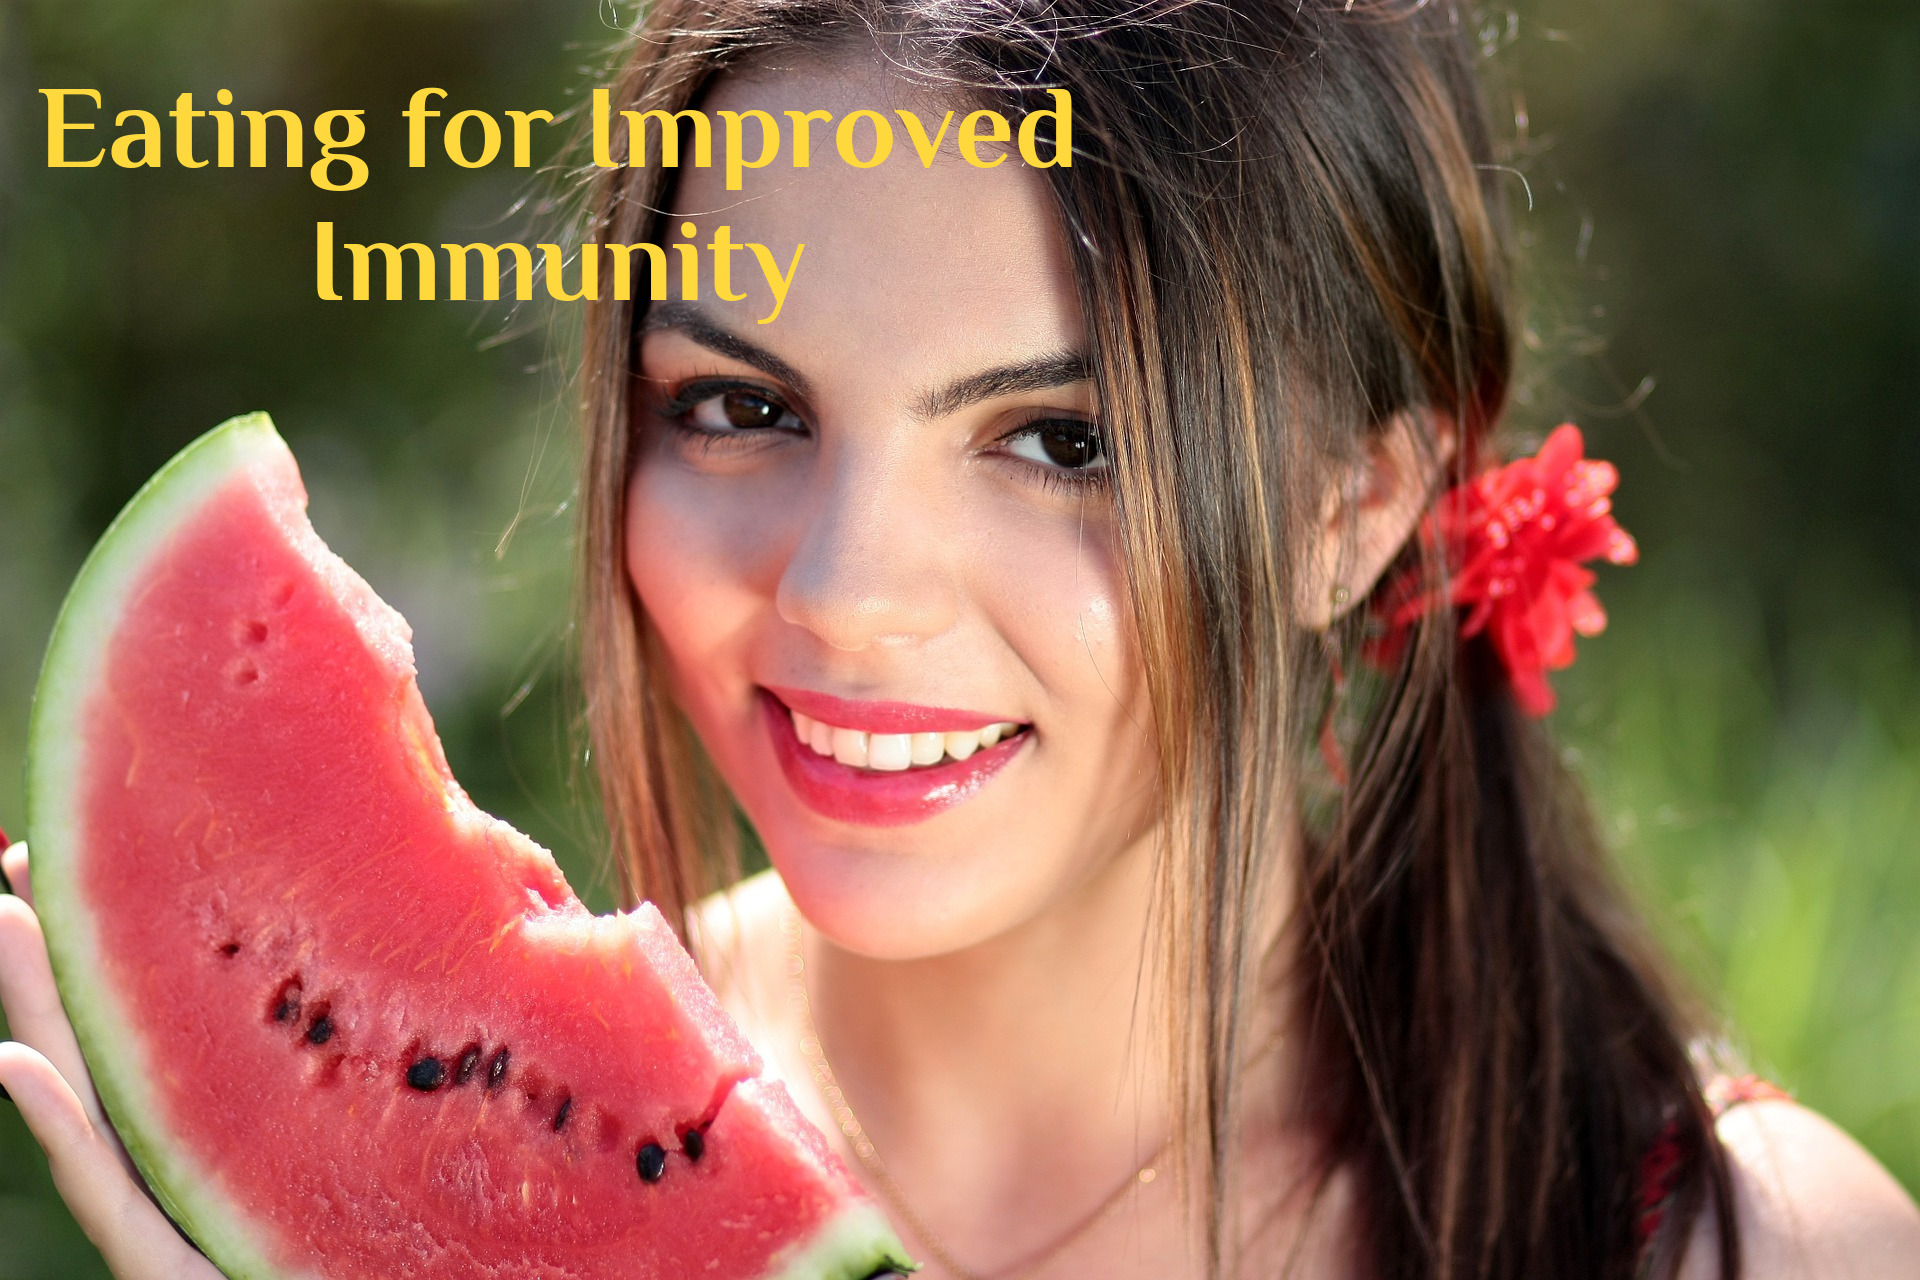 Eating for Improved Immunity